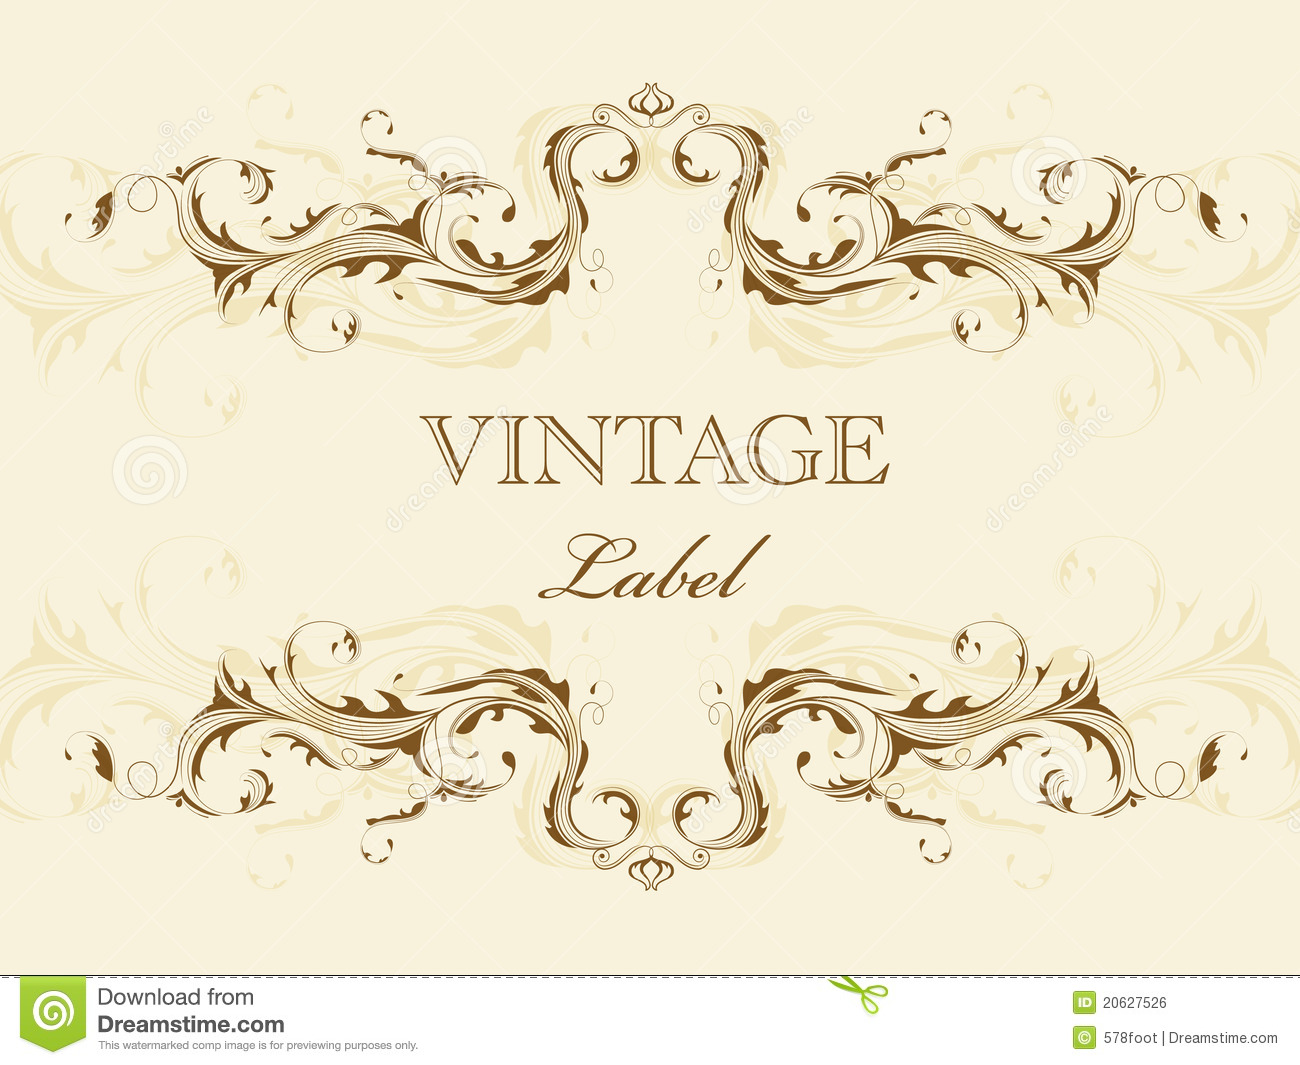 Vintage frame stock vector. Illustration of abstract - 20627526